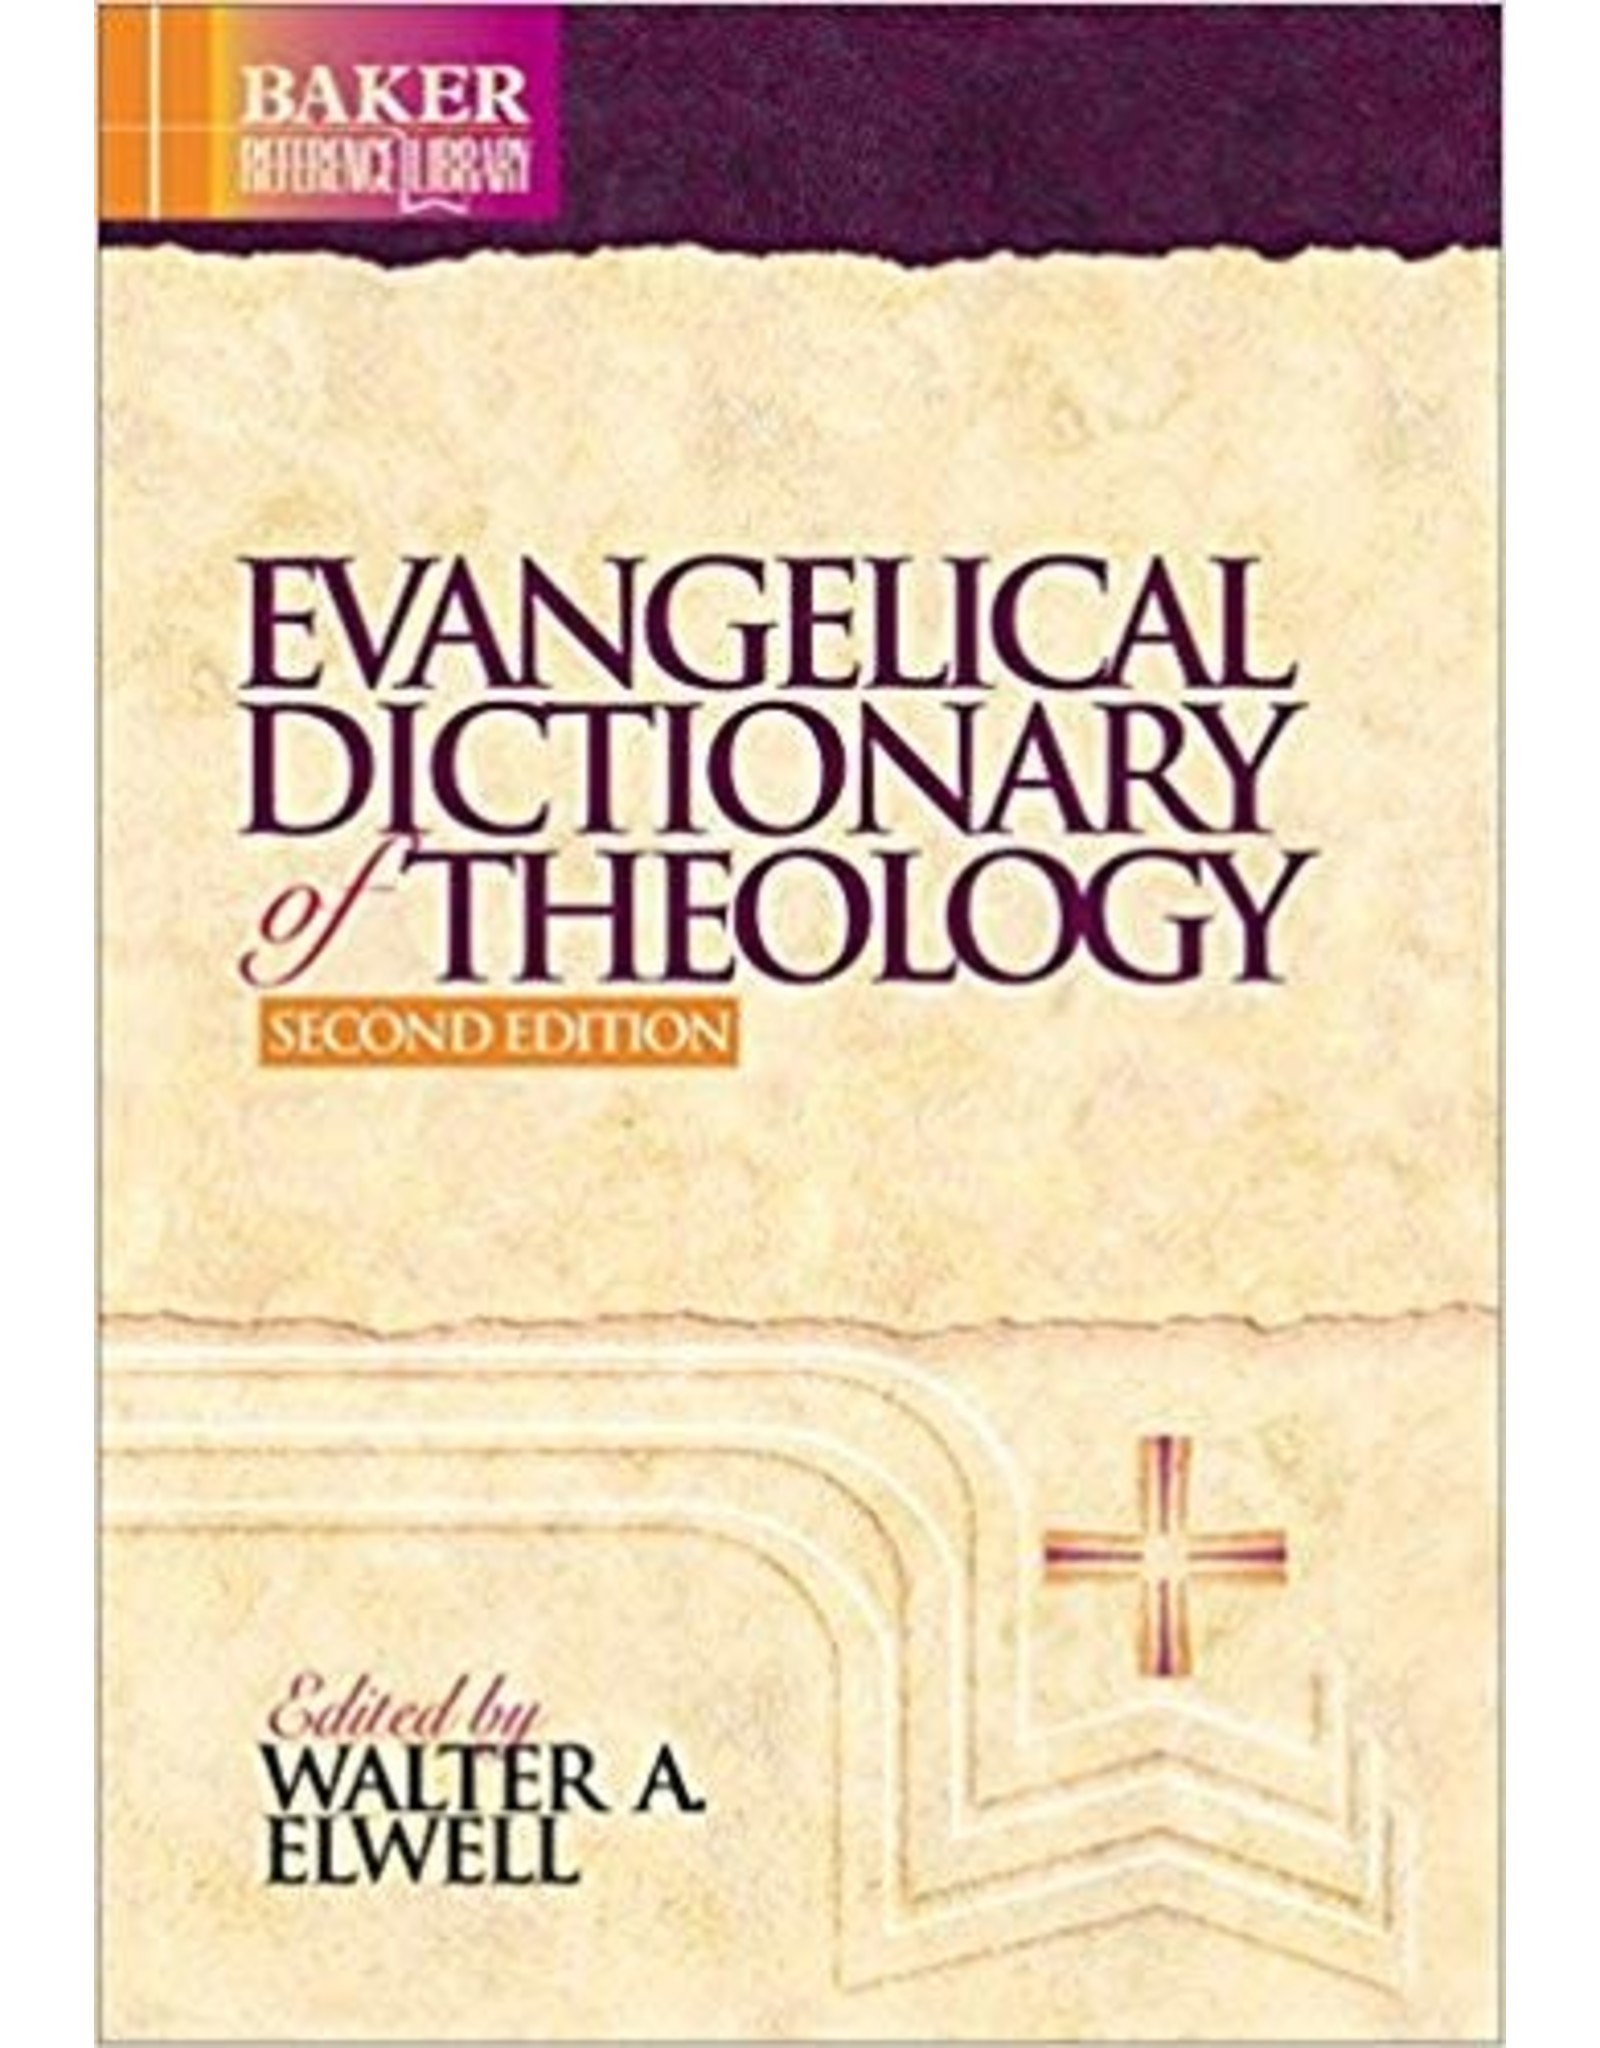 Elwell Evangelical Dictionary of Theology, 2nd Edition